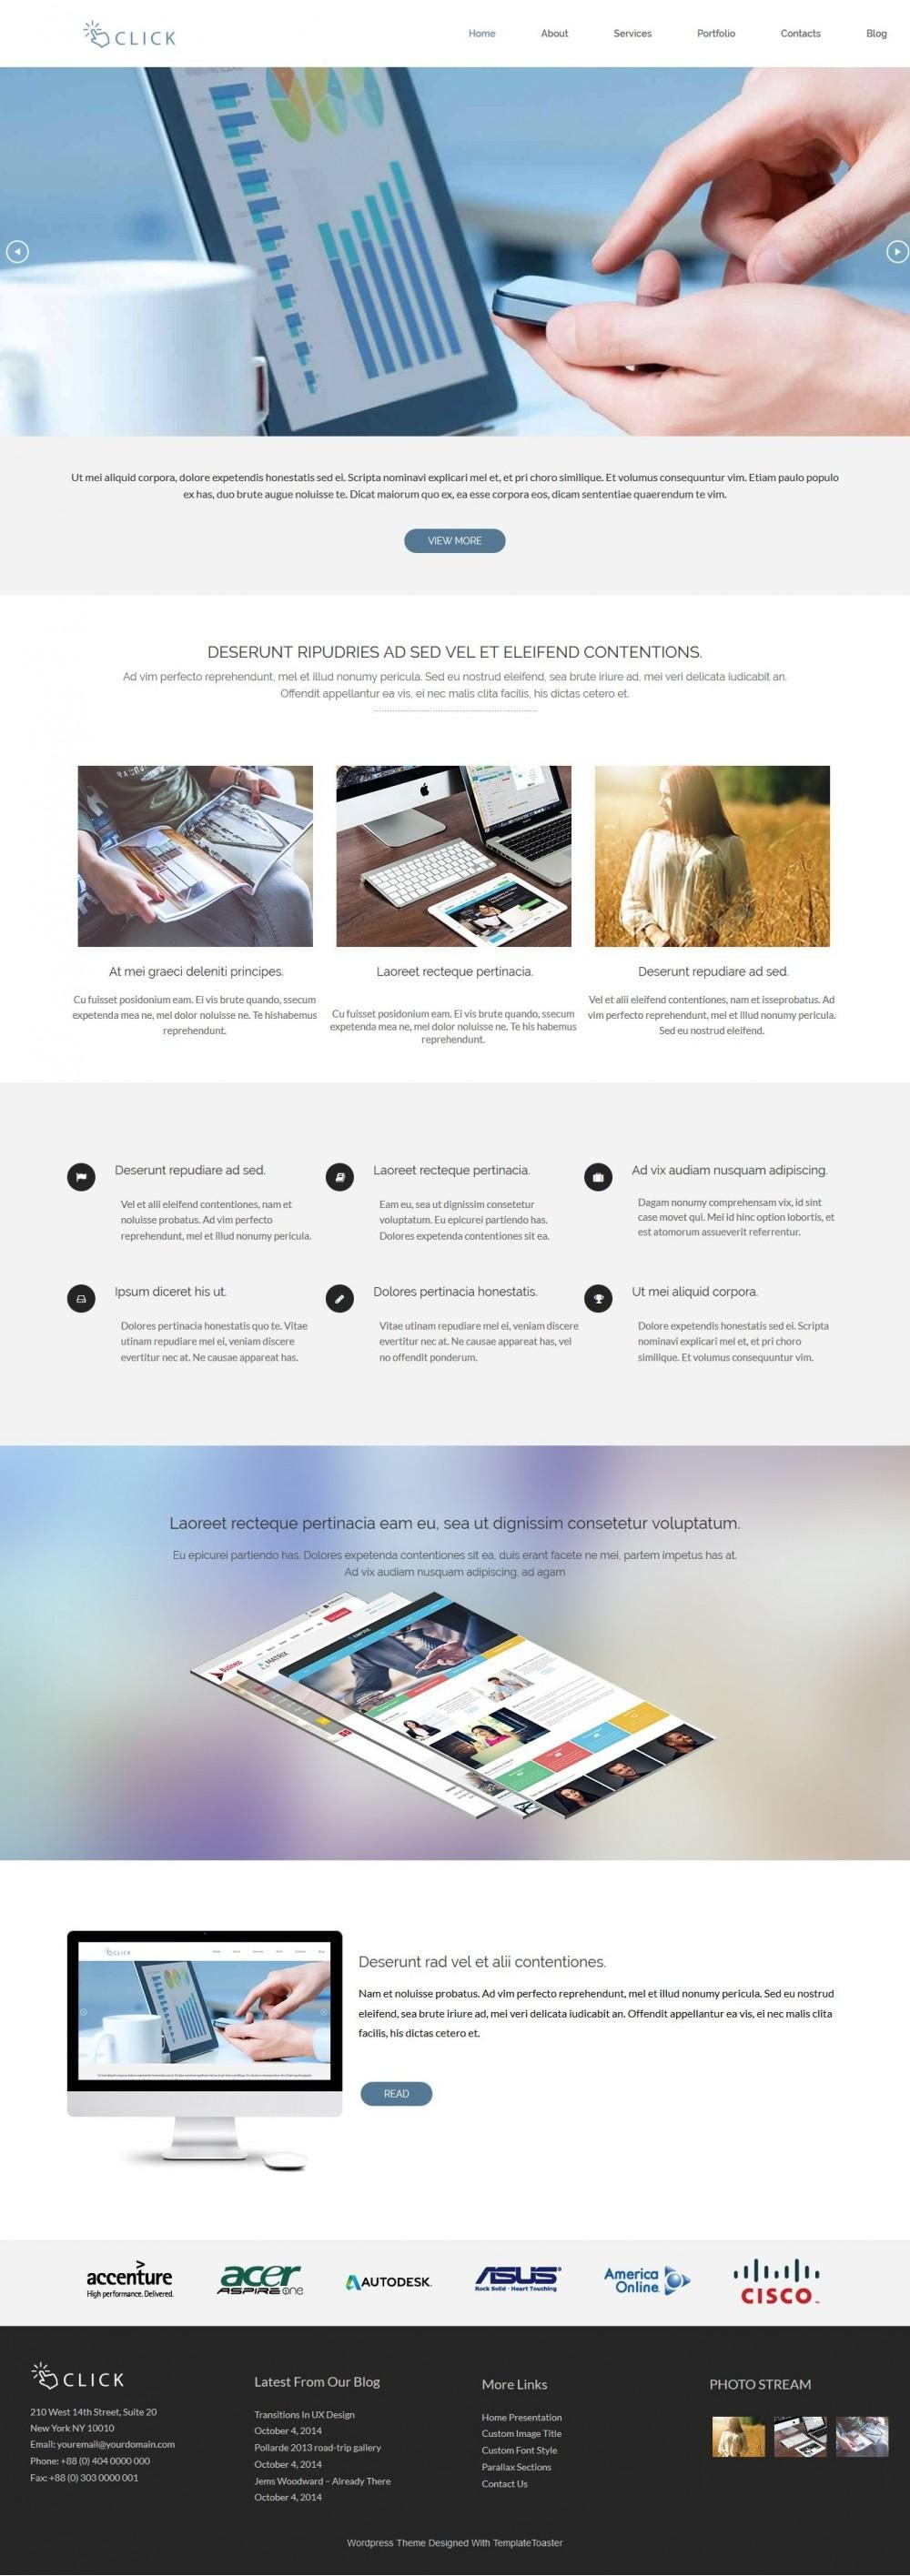 Click drupal theme for Web Agencies